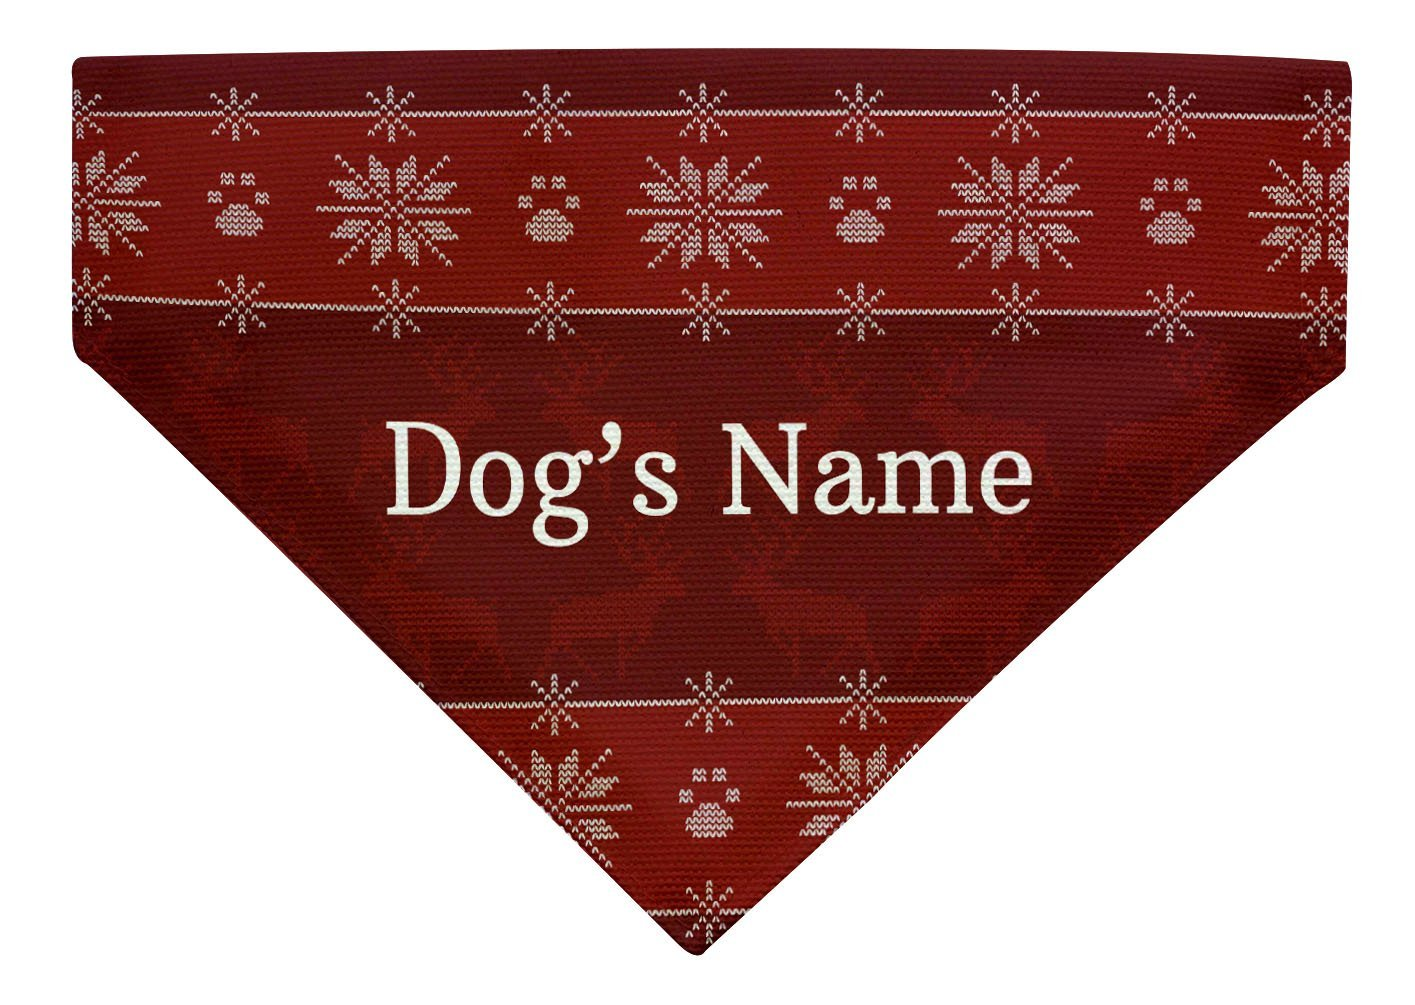 Personalized Gifts Dog Gift Custom Text Dog Ugly Christmas Sweater for Dog Large Dog Bandana Custom Scarf for Dogs Red